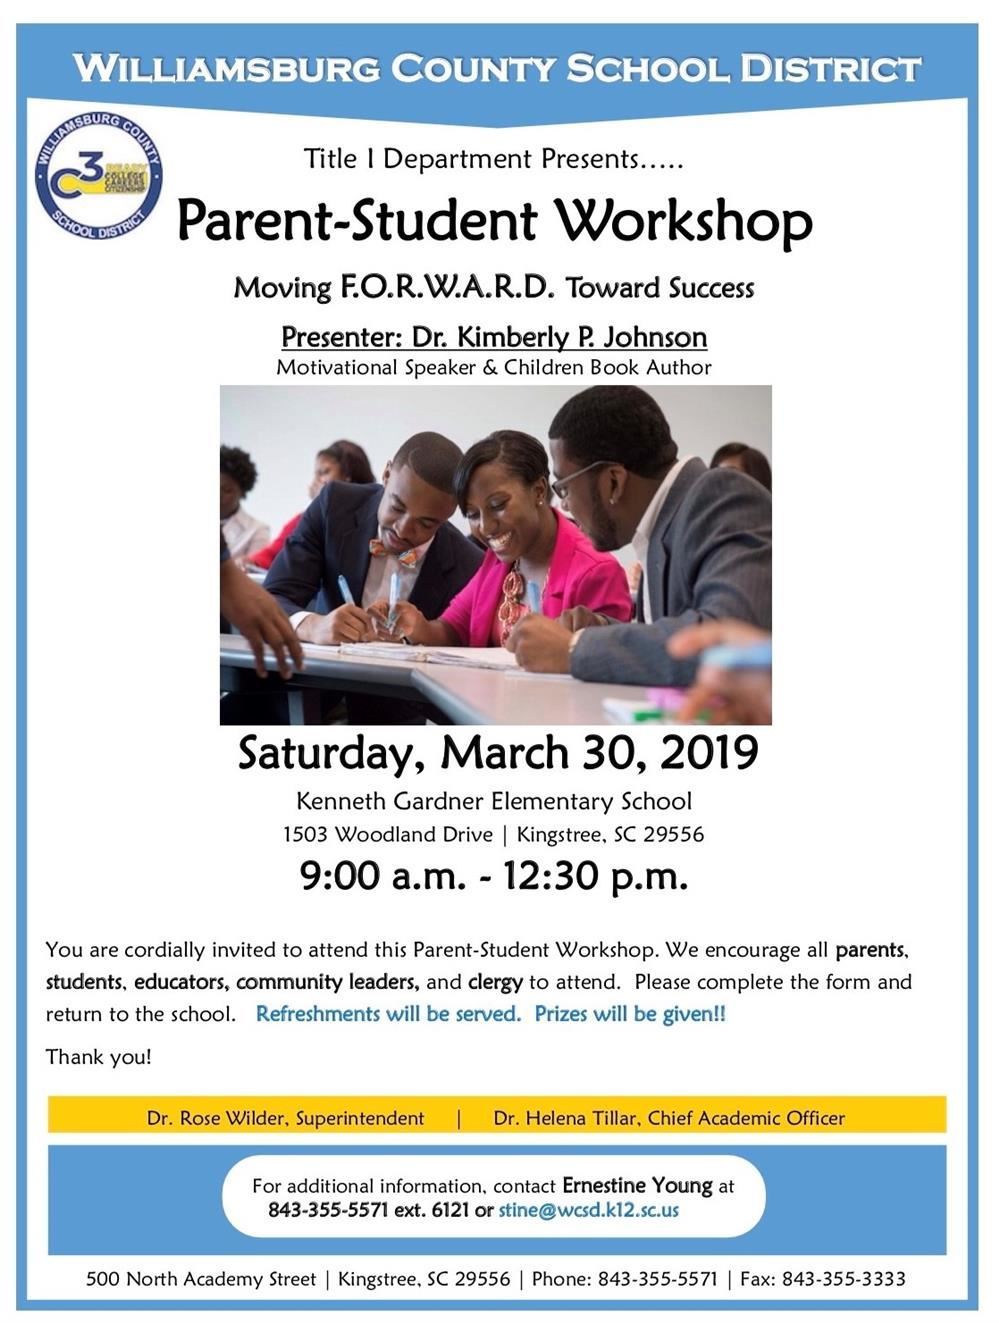 Parent-Student Workshop Announcement